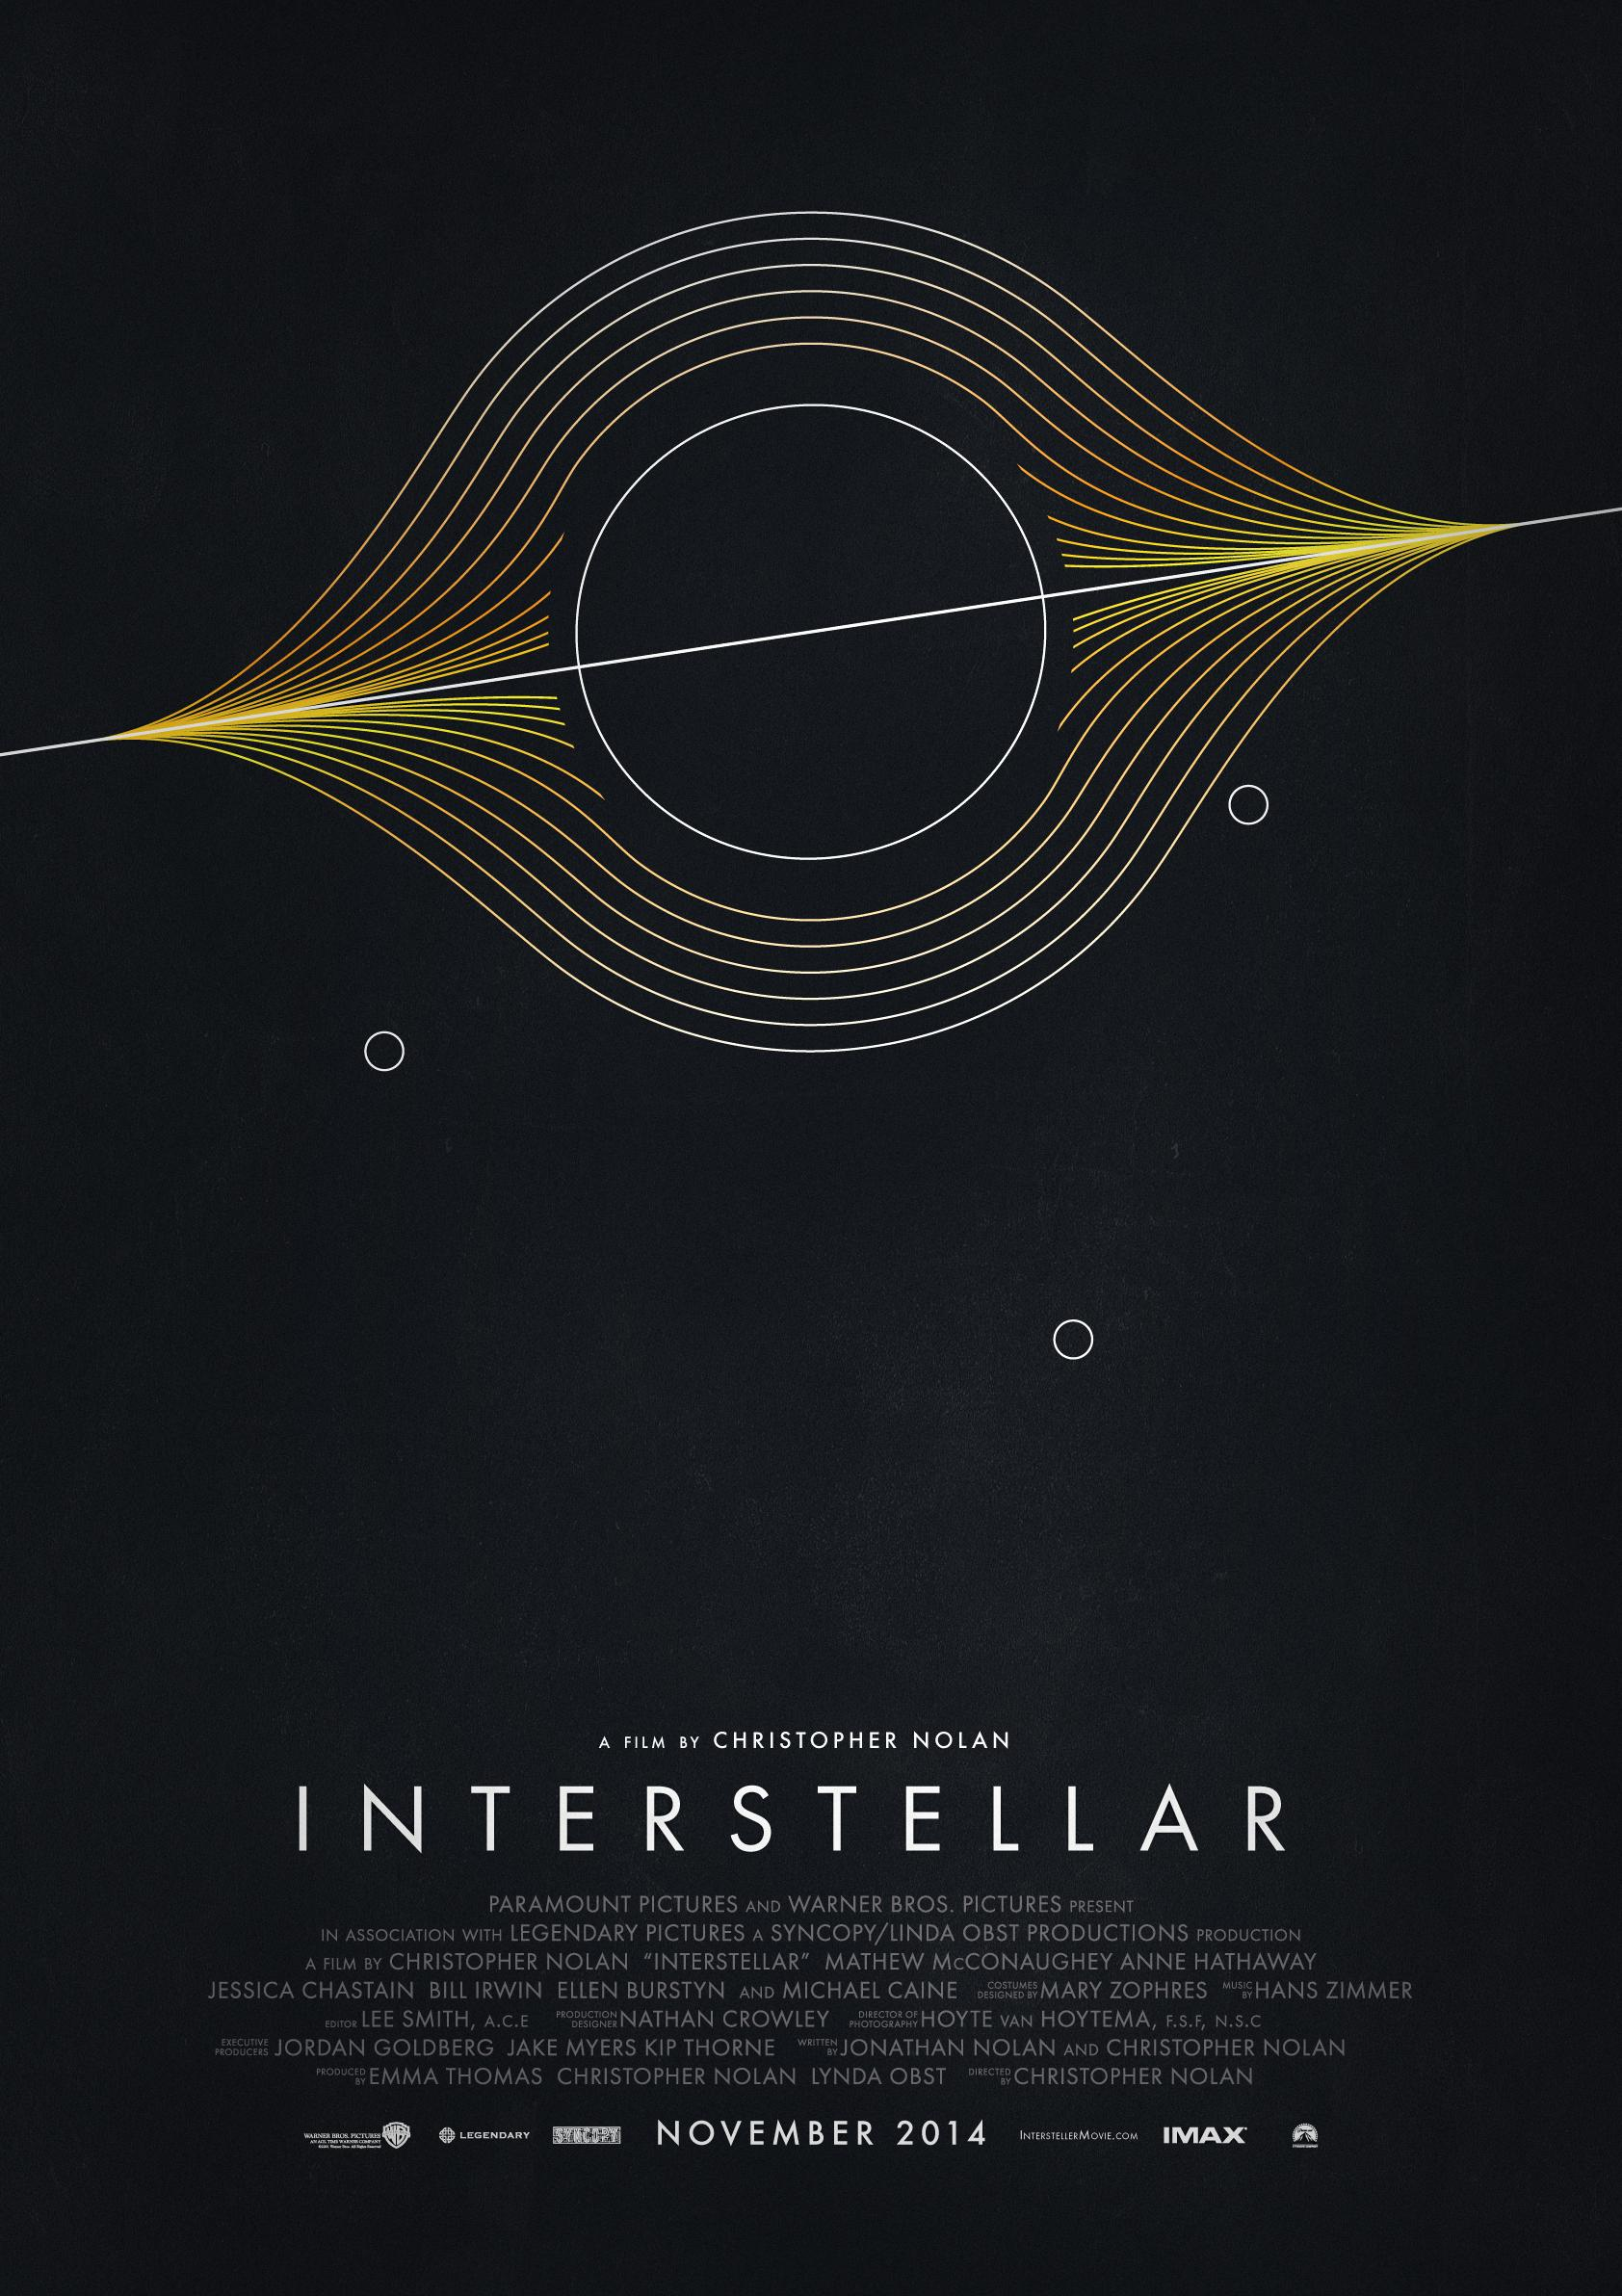 interstellar planets - photo #32